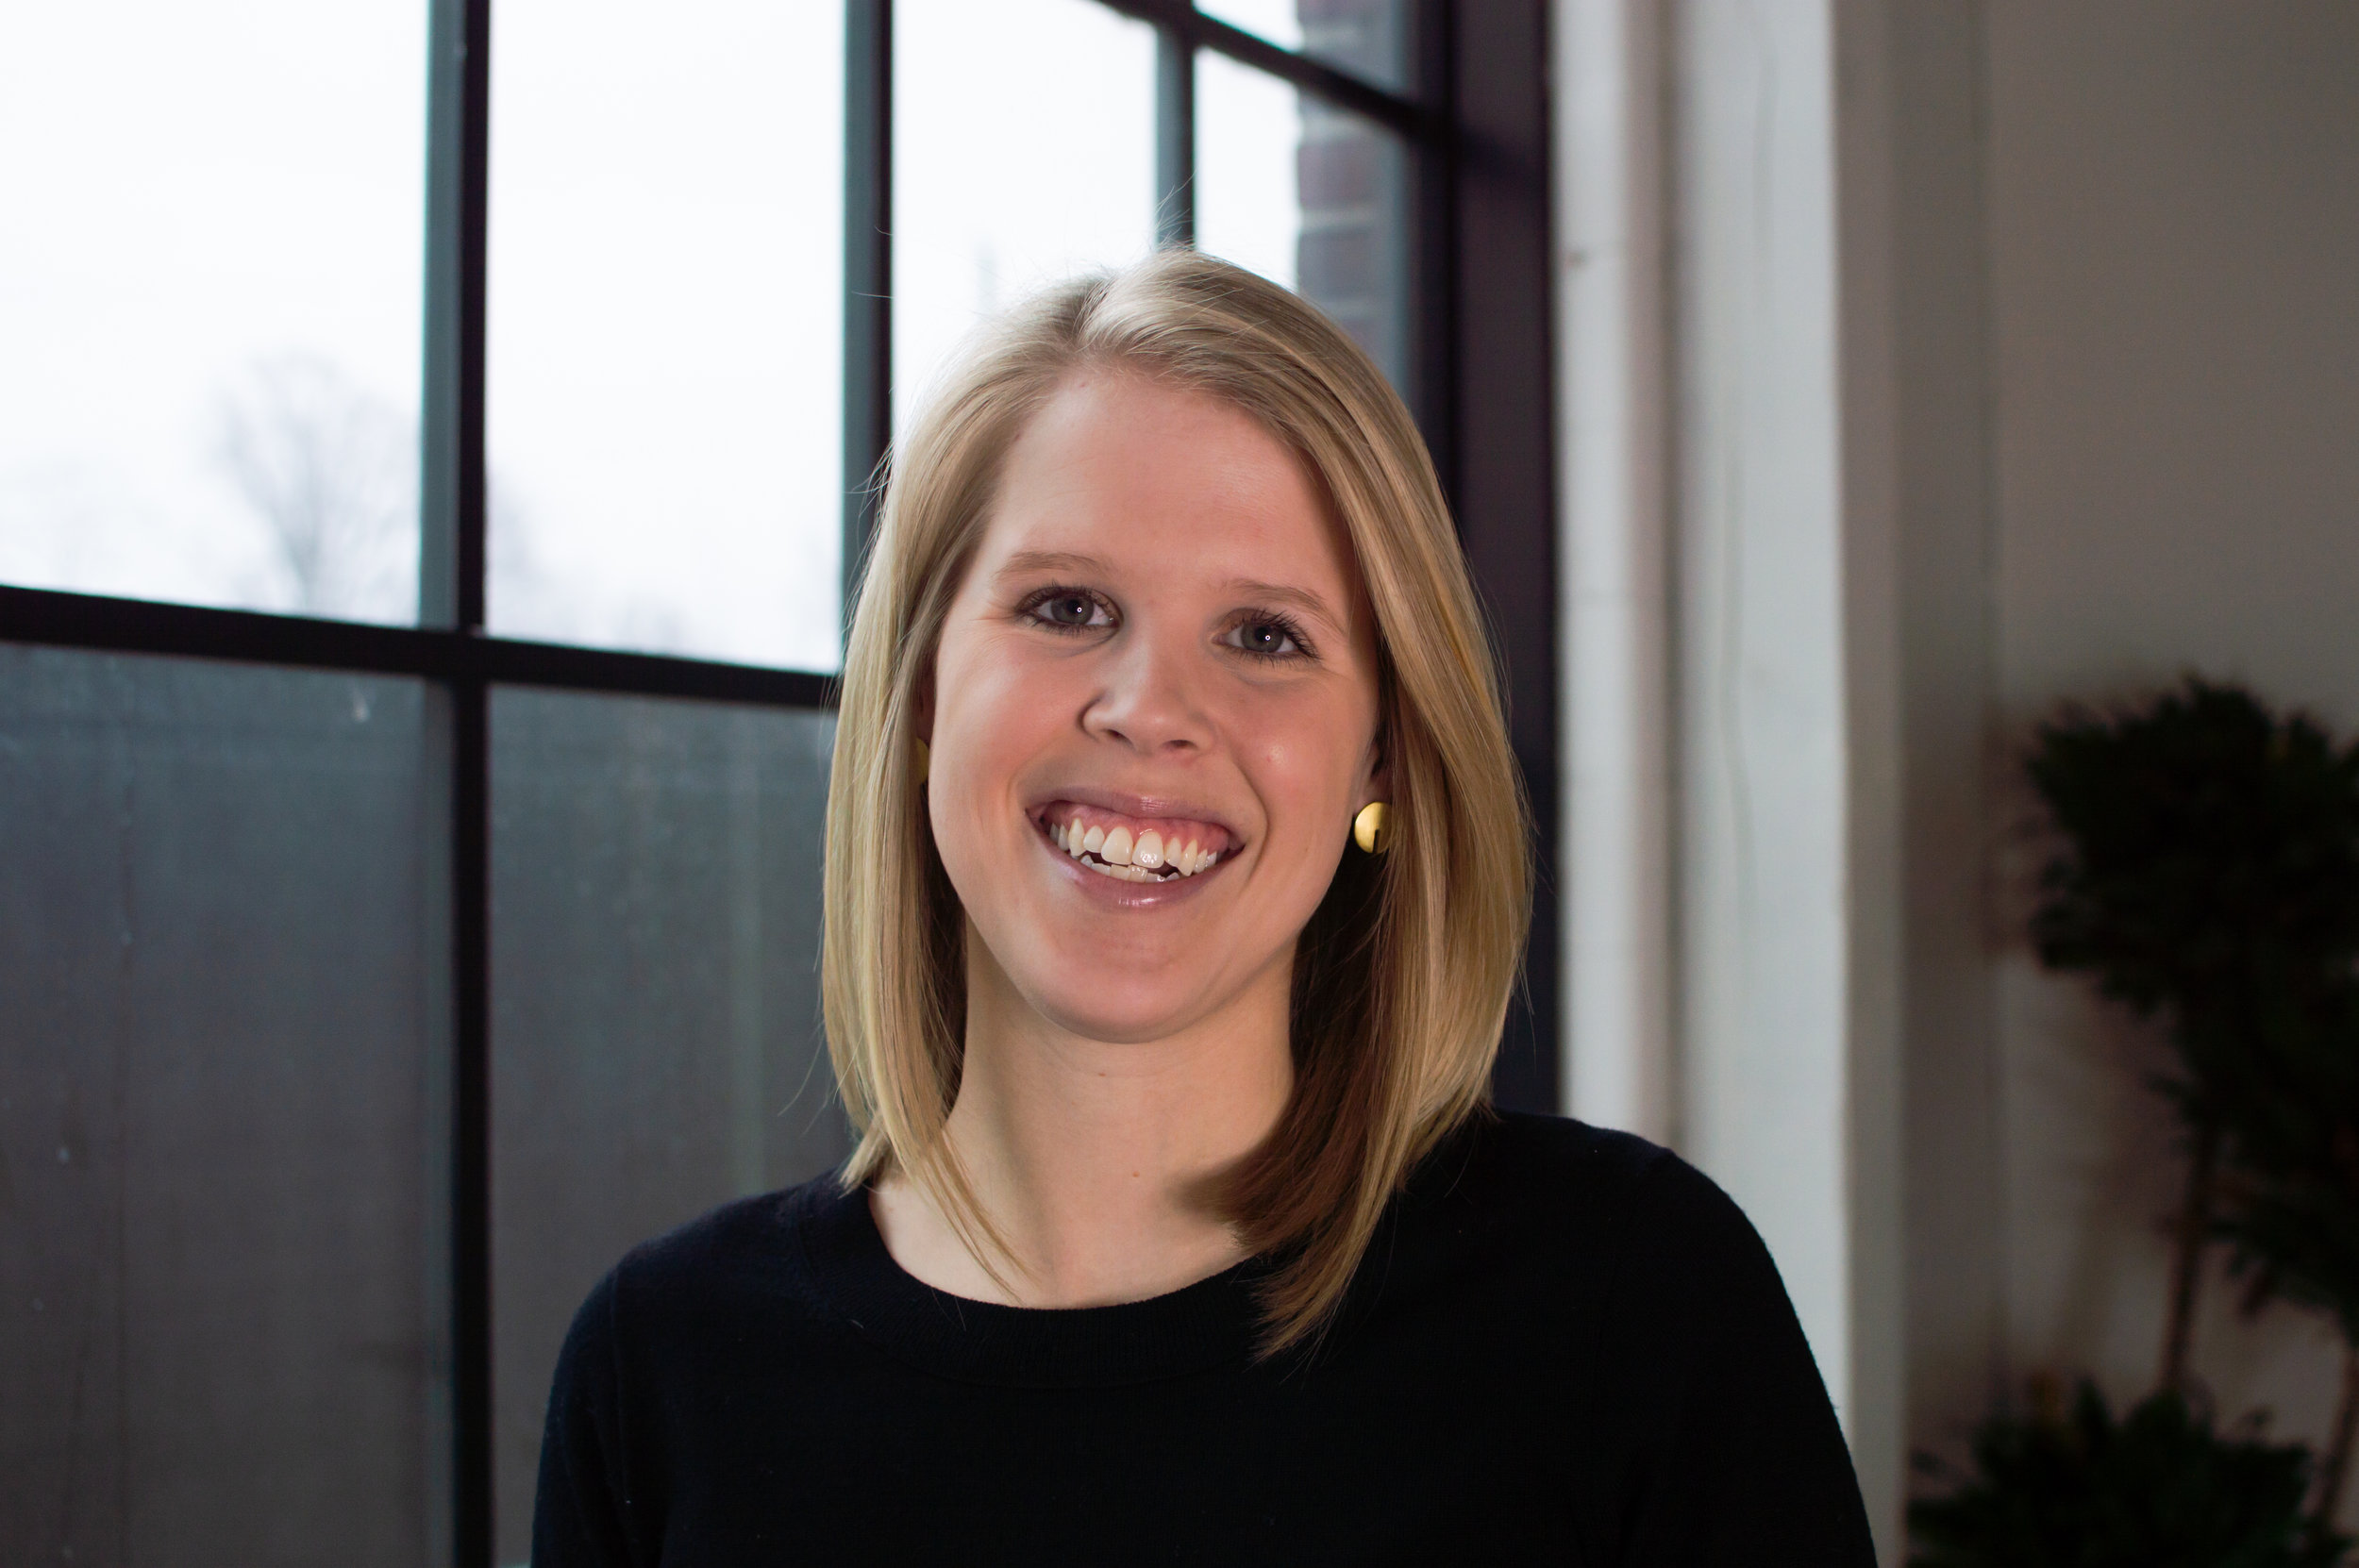 Beth Welch – Asst. Account Executive